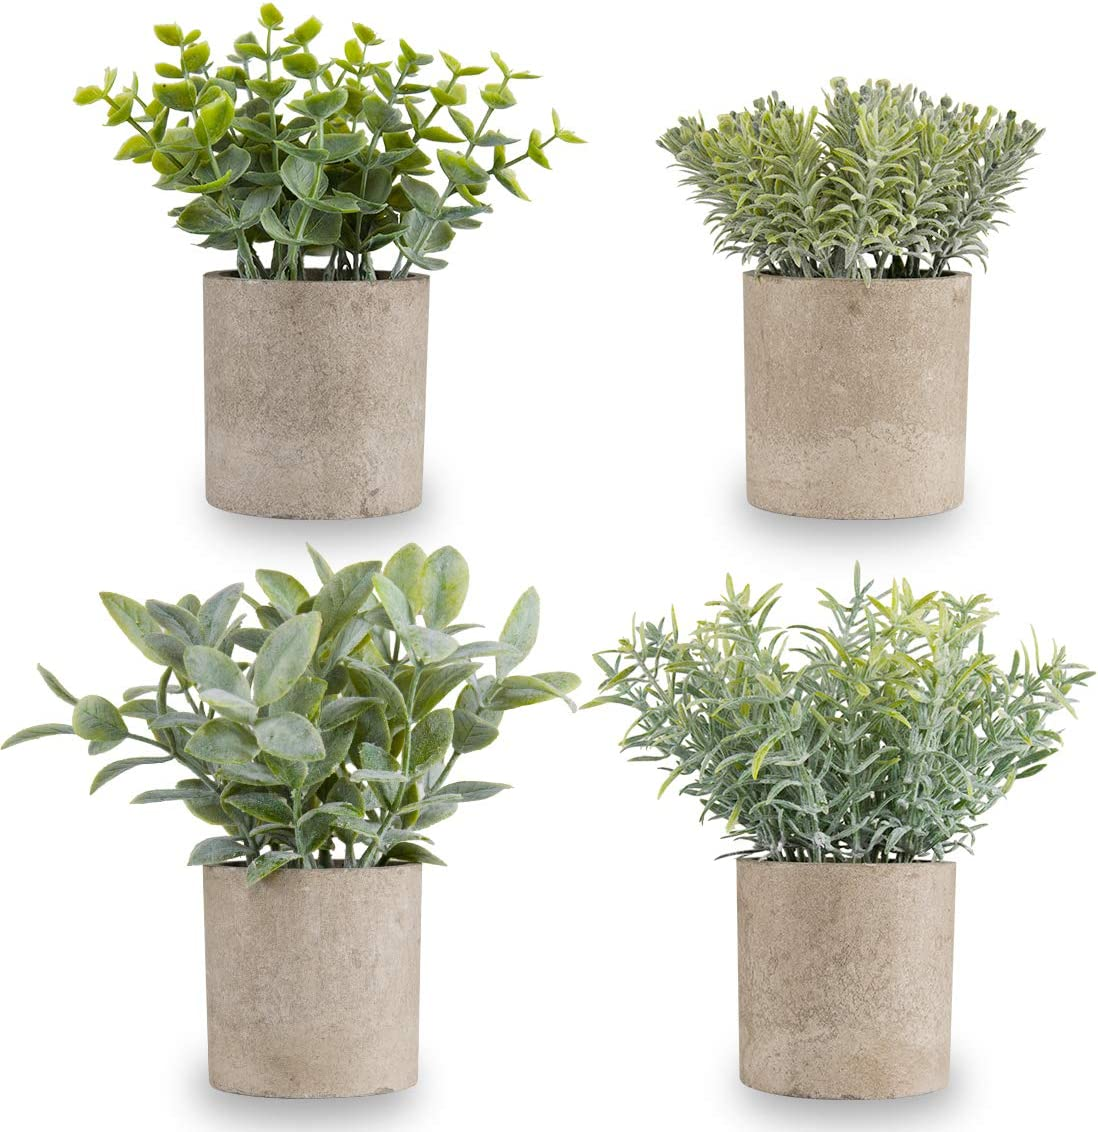 Miracliy Mini Potted Fake Plants Faux Artificial Eucalyptus Boxwood Rosemary Greenery in Gray Pots for Home Office Desk Bathroom Decoration Garden Decor, Indoor & Outdoor,Set of 4